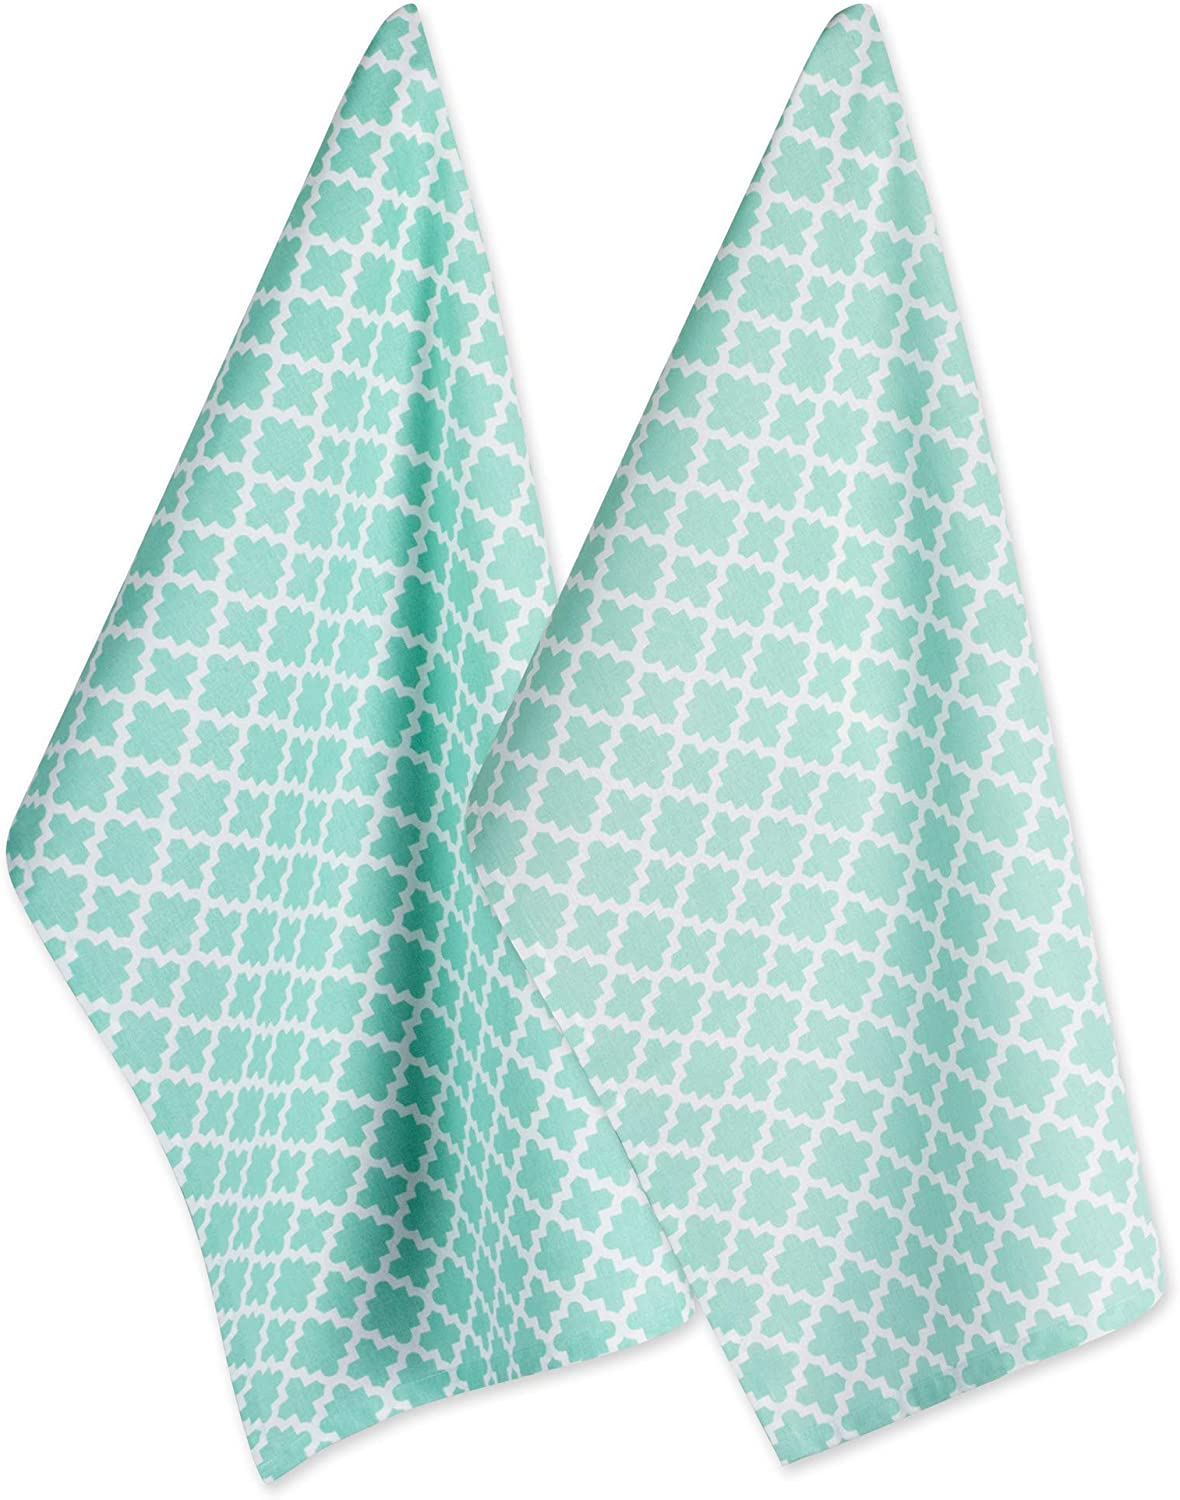 Dii Cotton Lattice Dish Towels With Hanging Loop 18 X 28 Set Of 2 Fast Dry Kitchen Tea Towels For Everyday Cooking And Baking Aqua Amazon Ca Home Kitchen